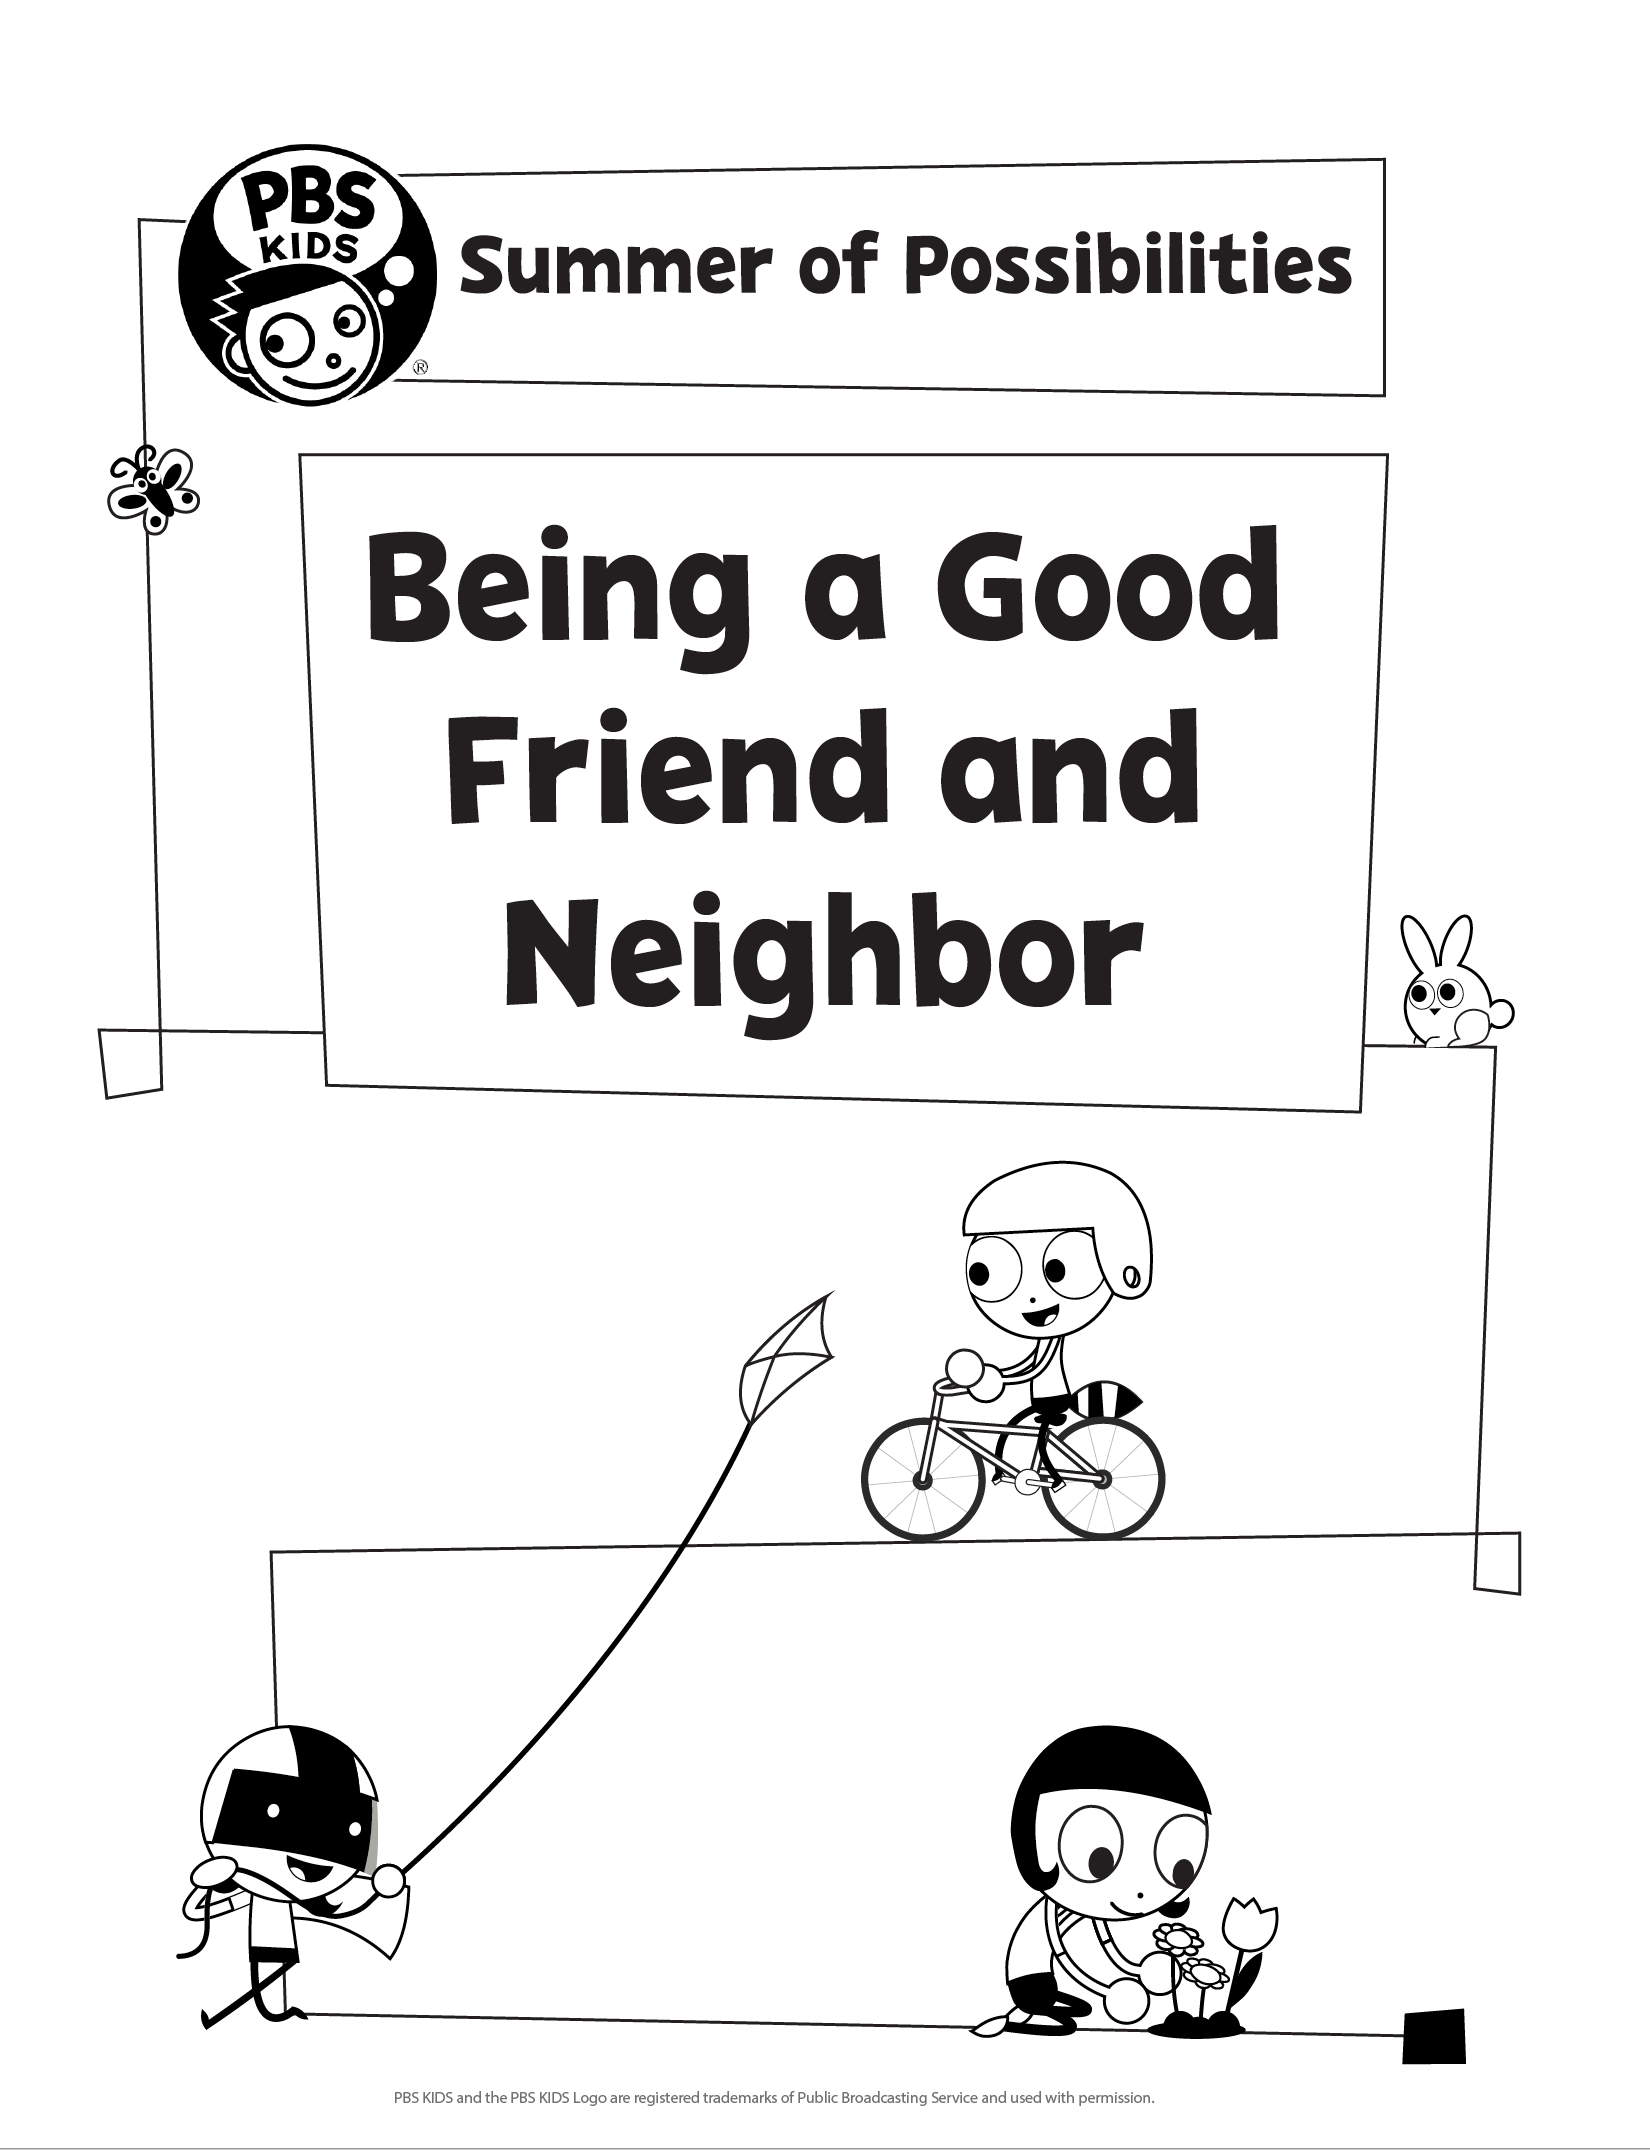 Being a good friend and neighbor